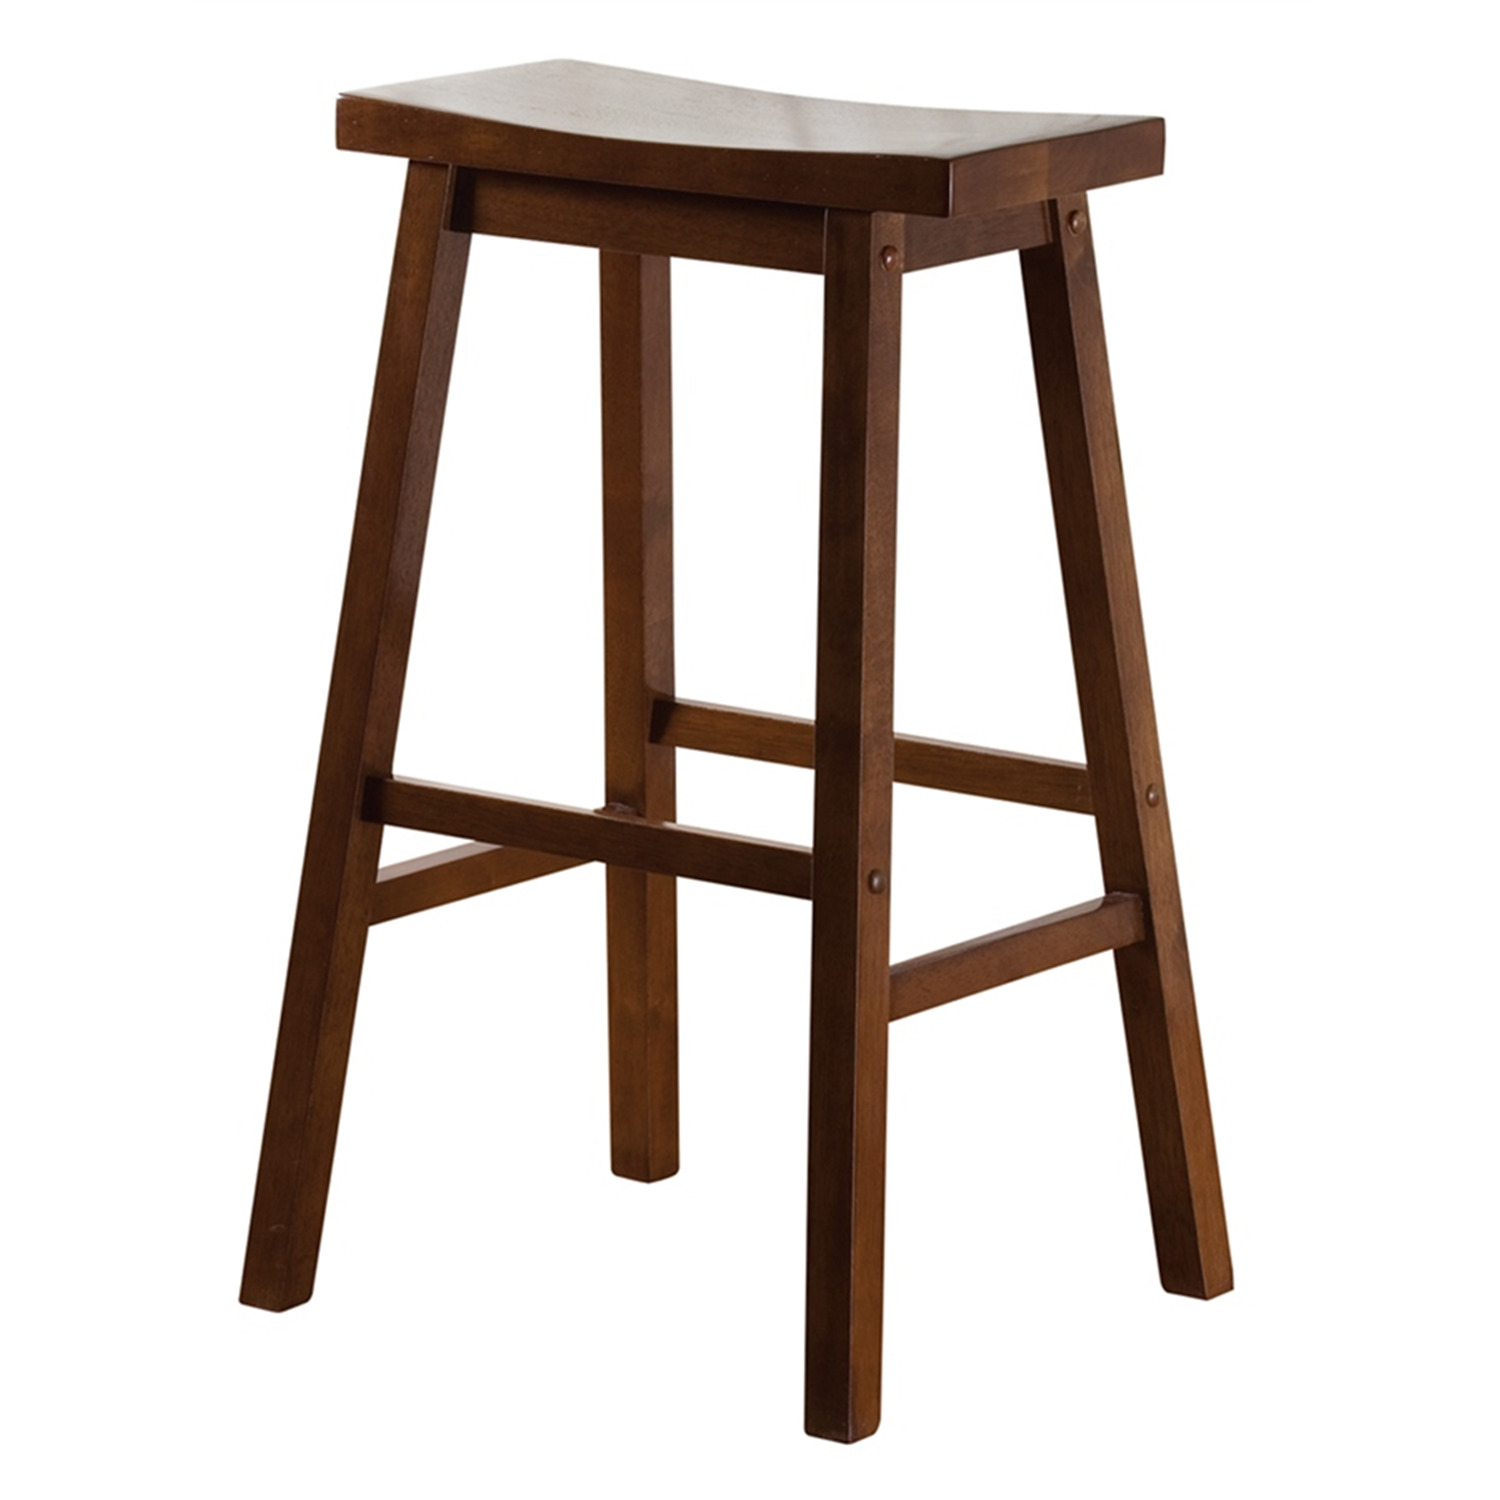 American Heritage Billiards 130802WA Wood Saddle Bar Stool : 130802wawoodsaddlebarstool from www.ojcommerce.com size 676 x 900 jpeg 100kB